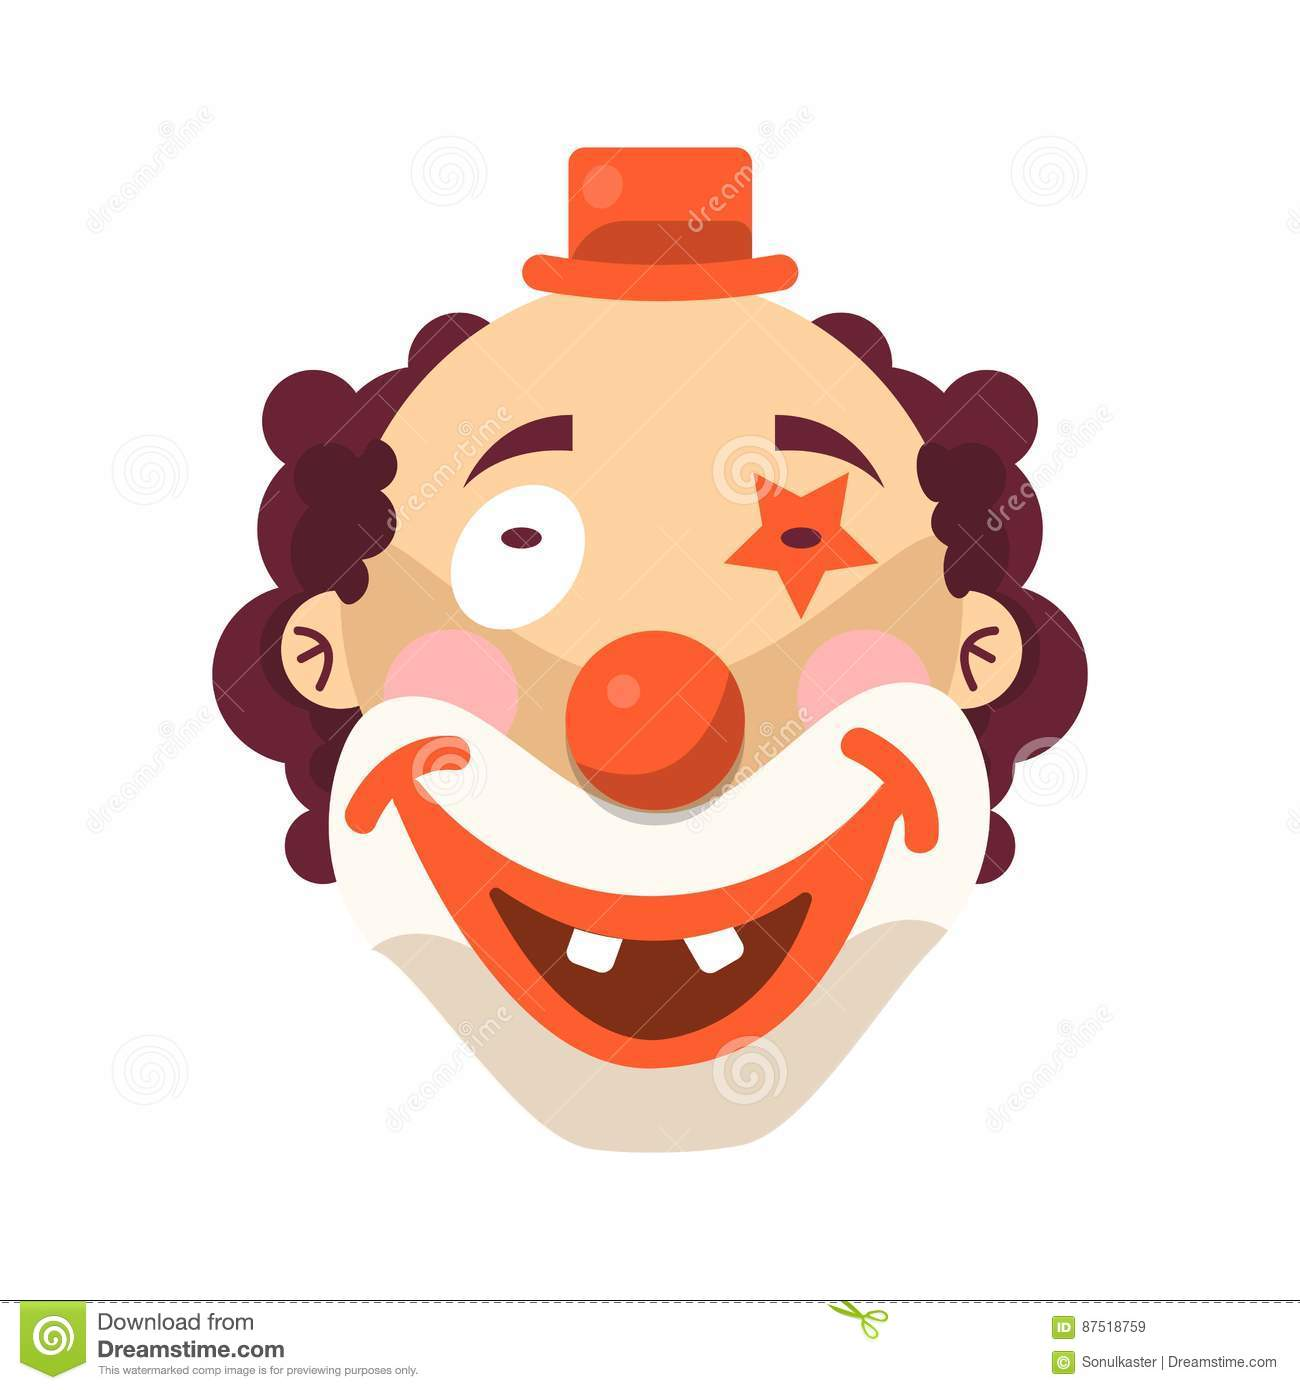 dc7d24772 Clown face smile. Vector isolated icon of cartoon circus funny comic man or  character on confetti background